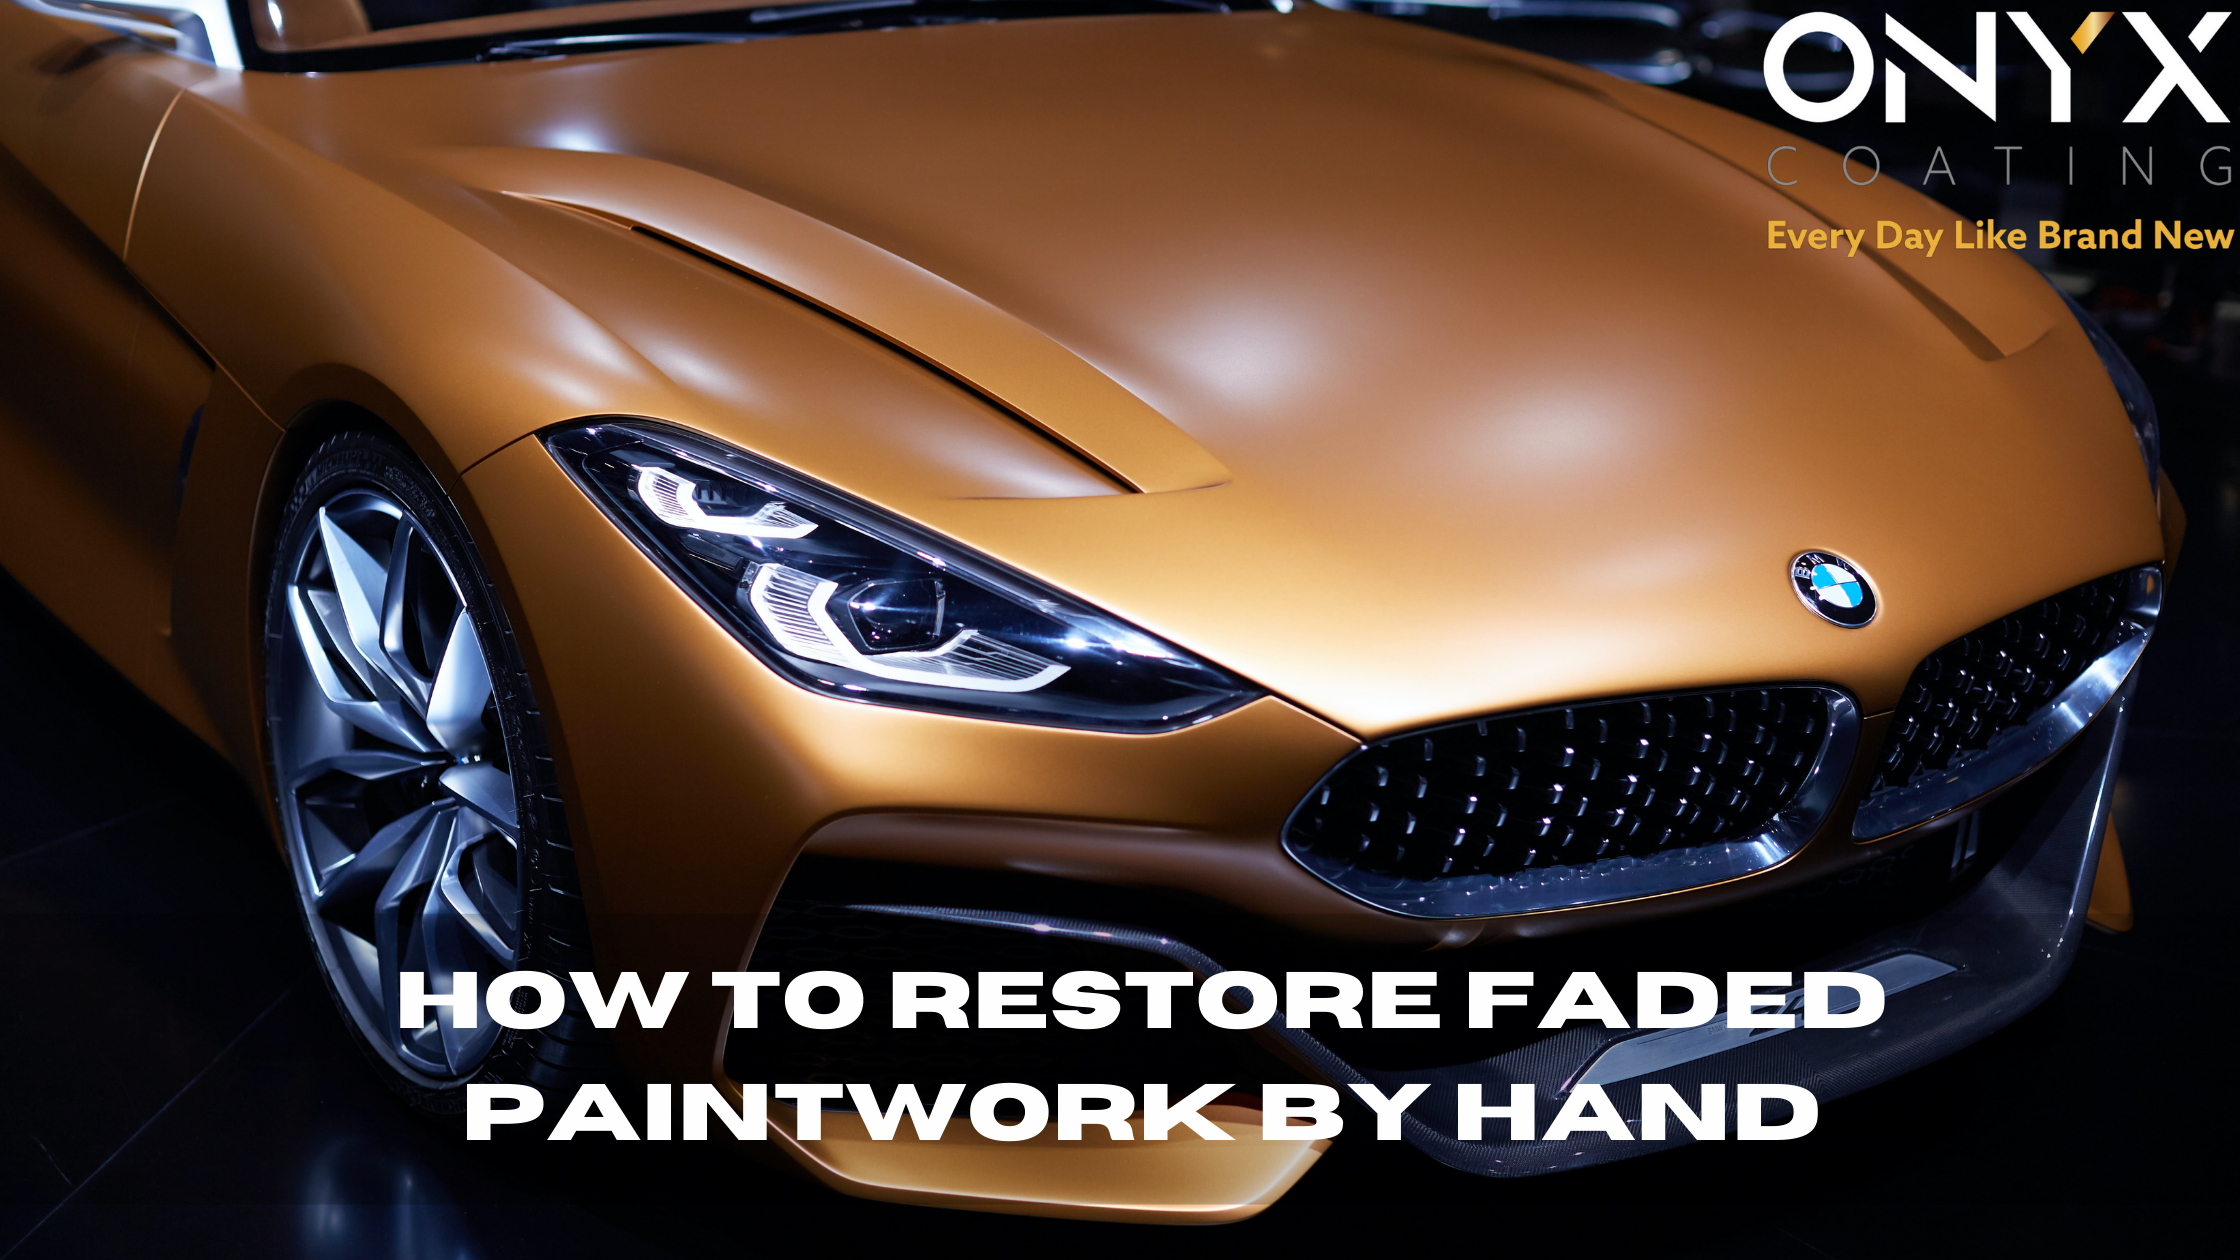 How to restore faded paintwork by hand